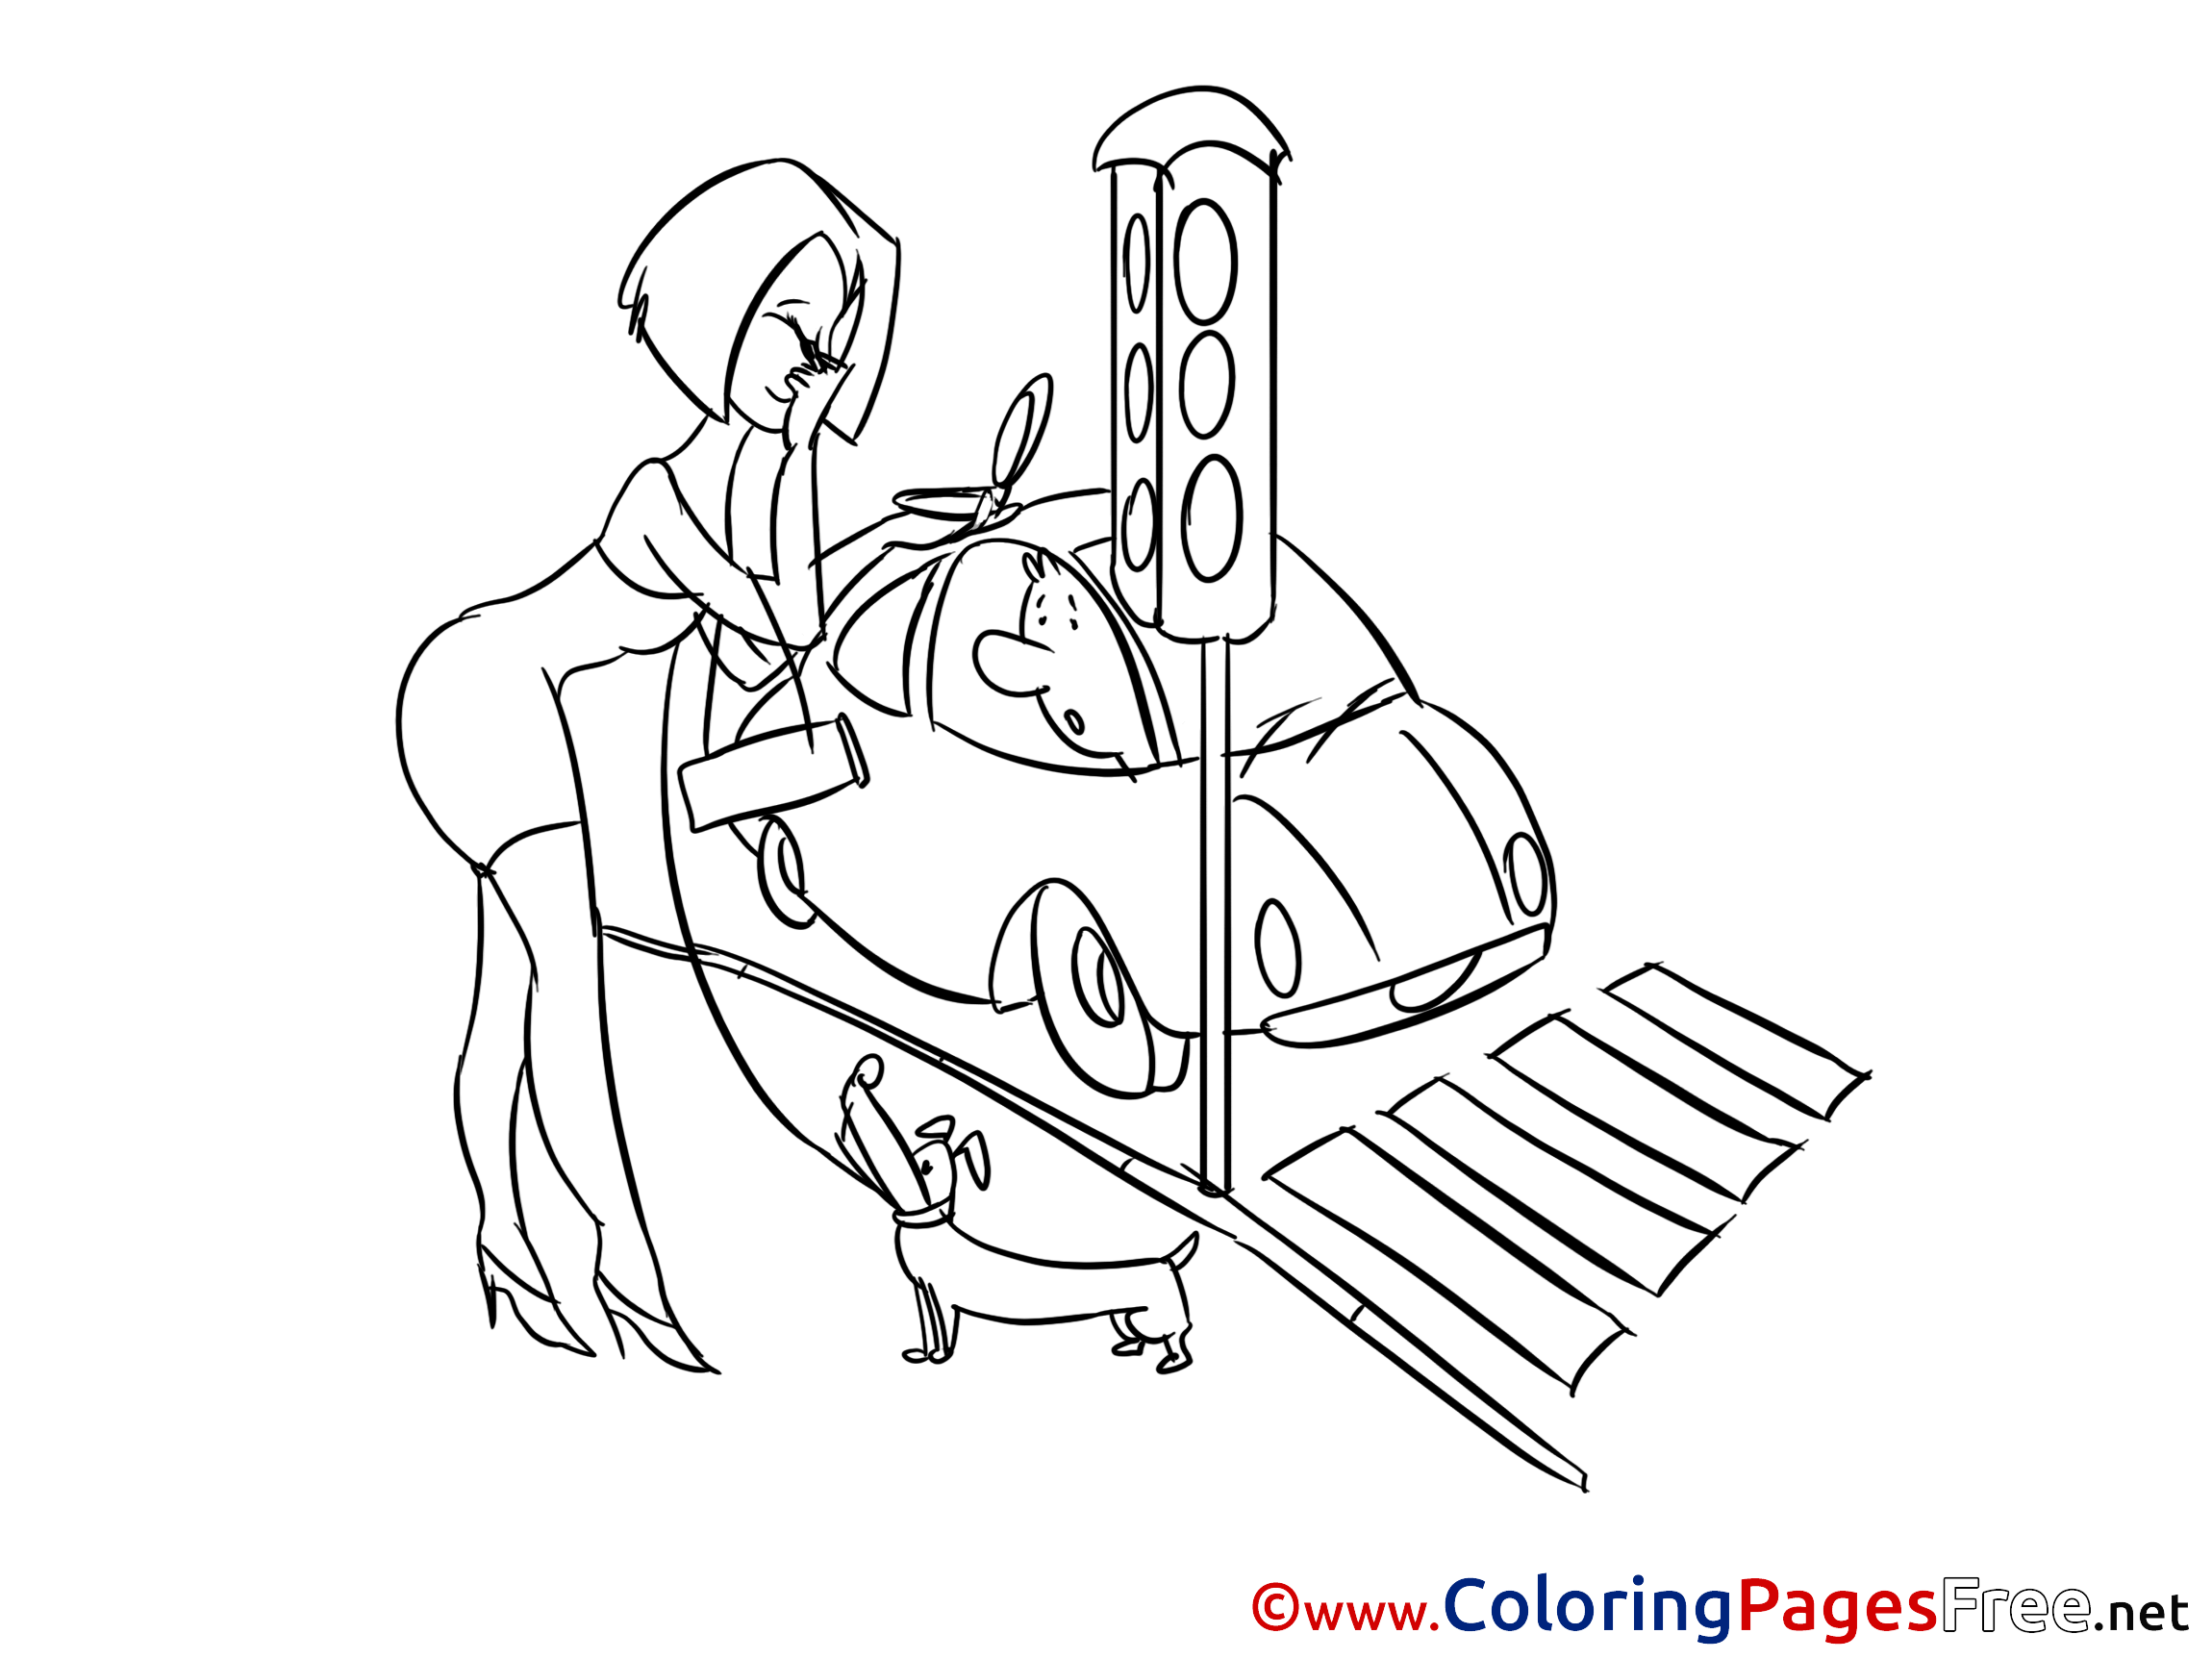 Traffic Light For Children Free Coloring Pages